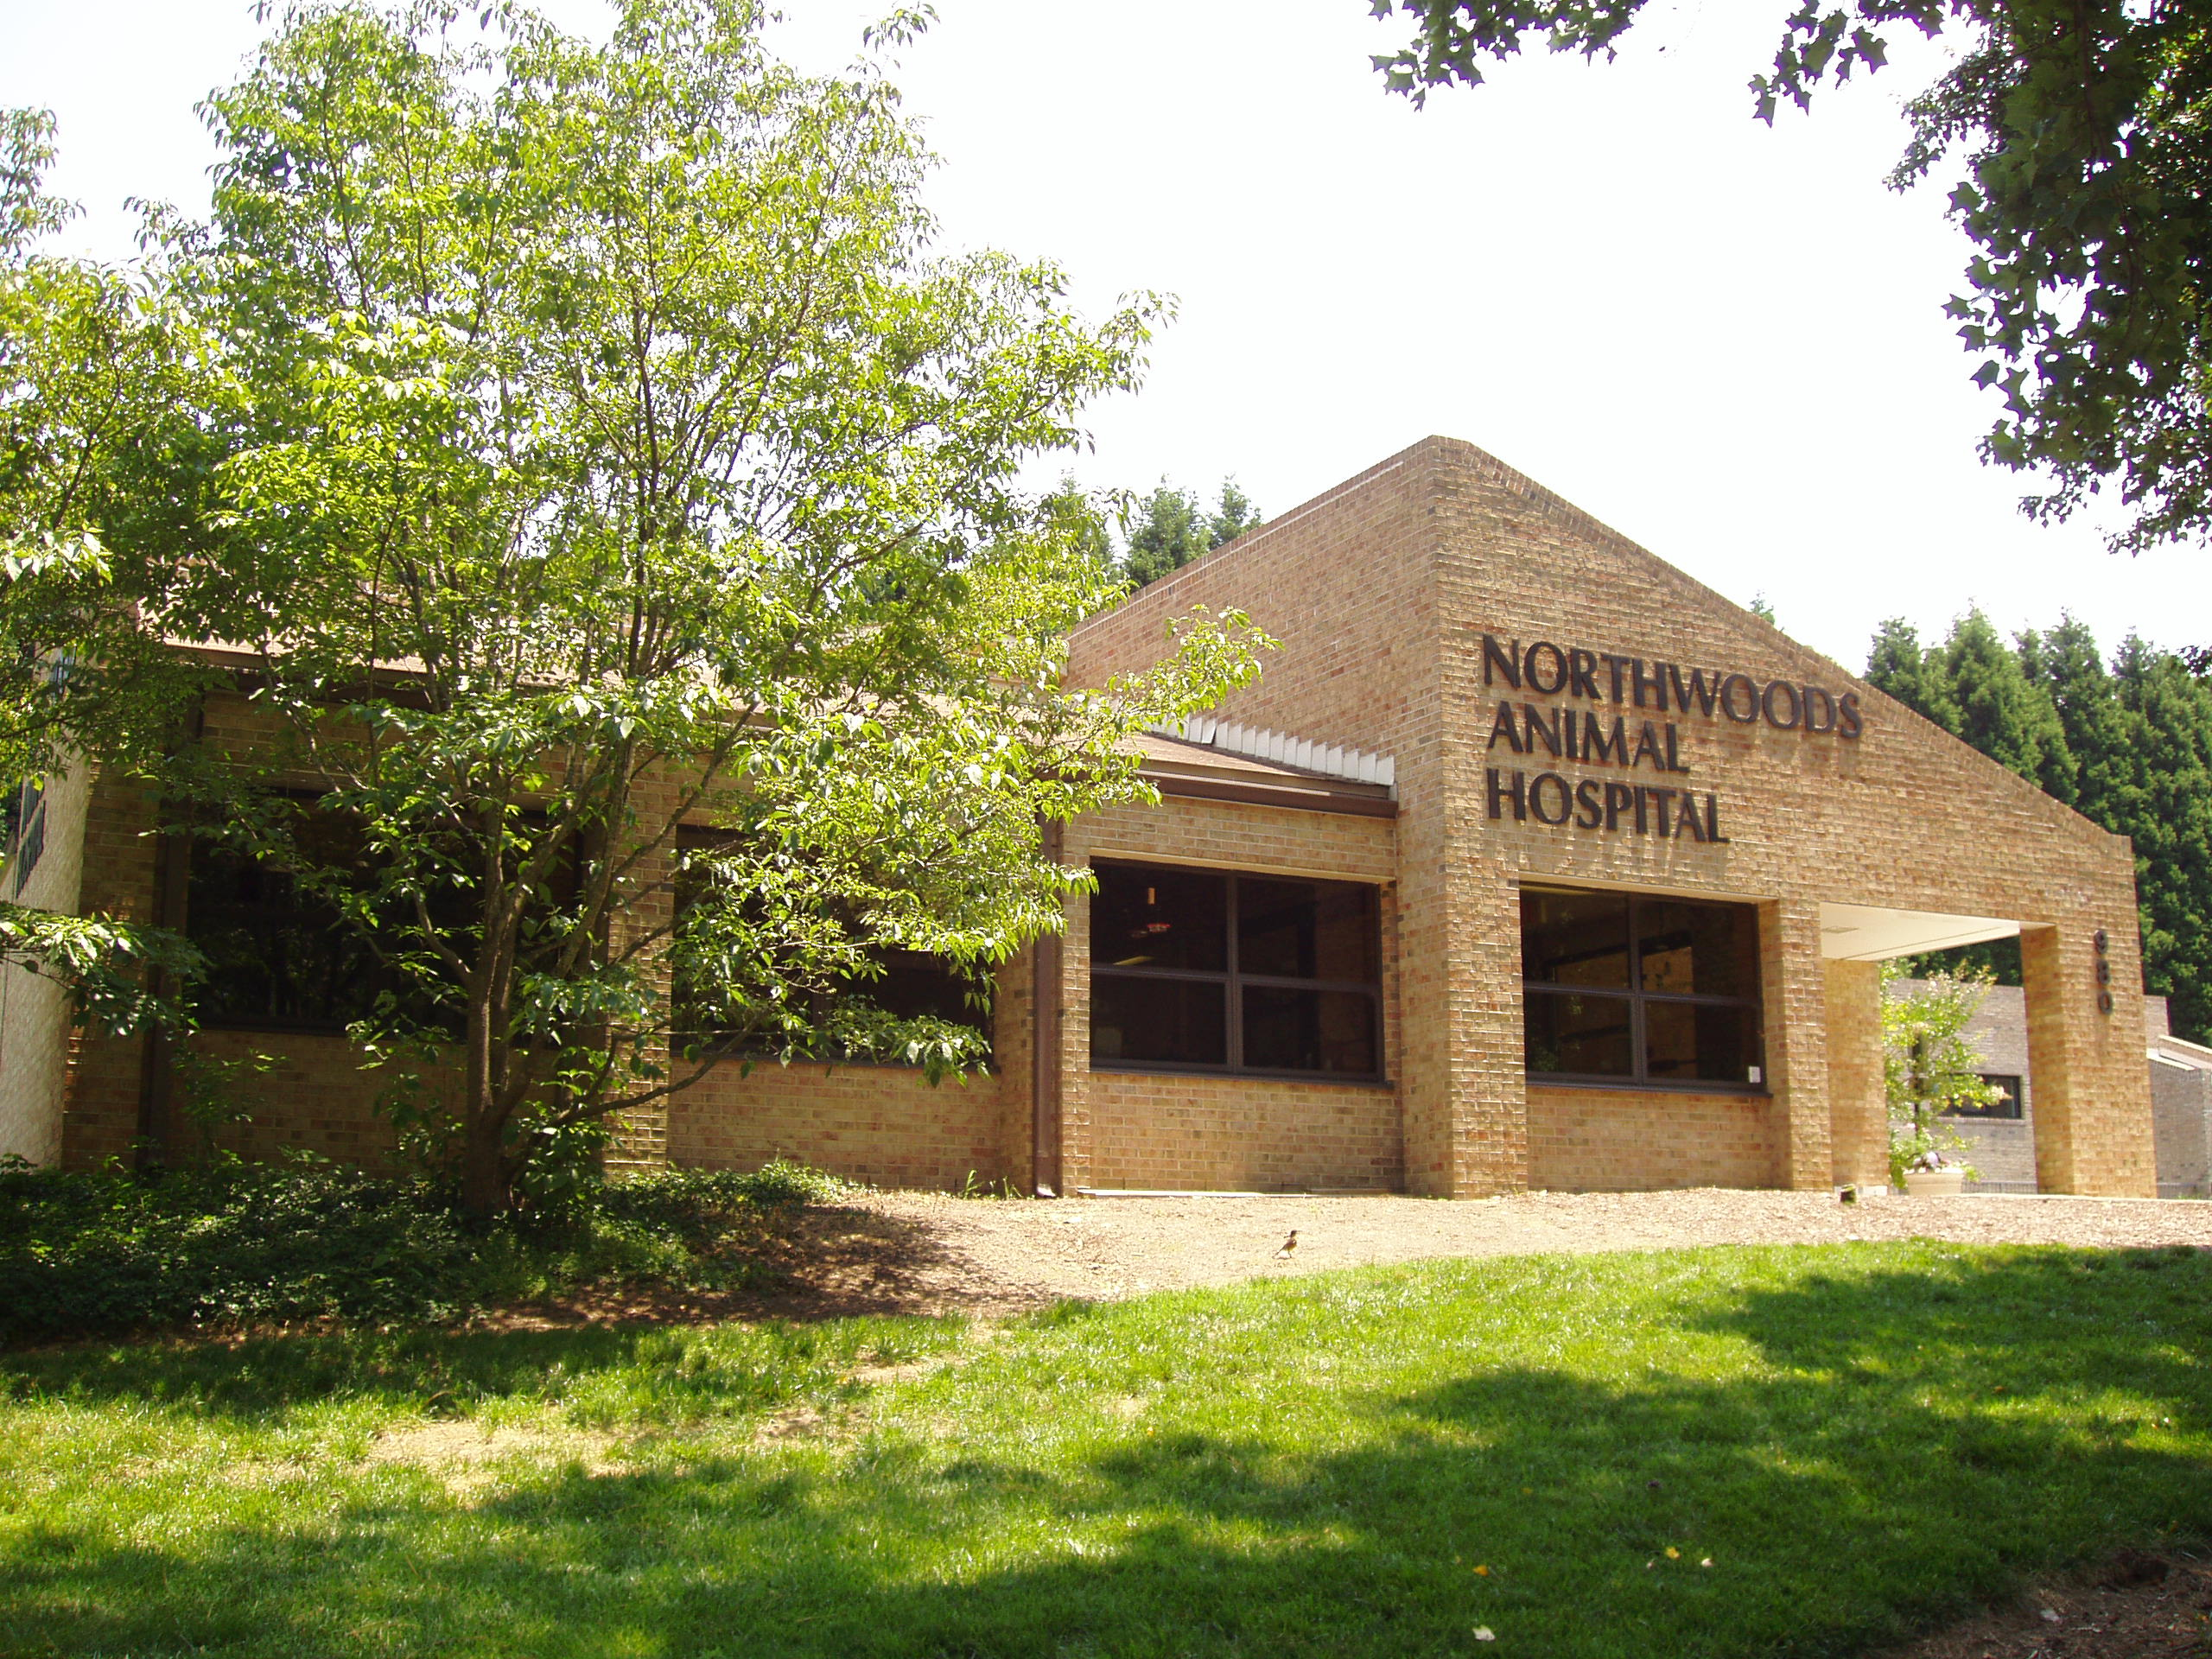 Northwoods Animal Hospital of Cary - Cary, NC